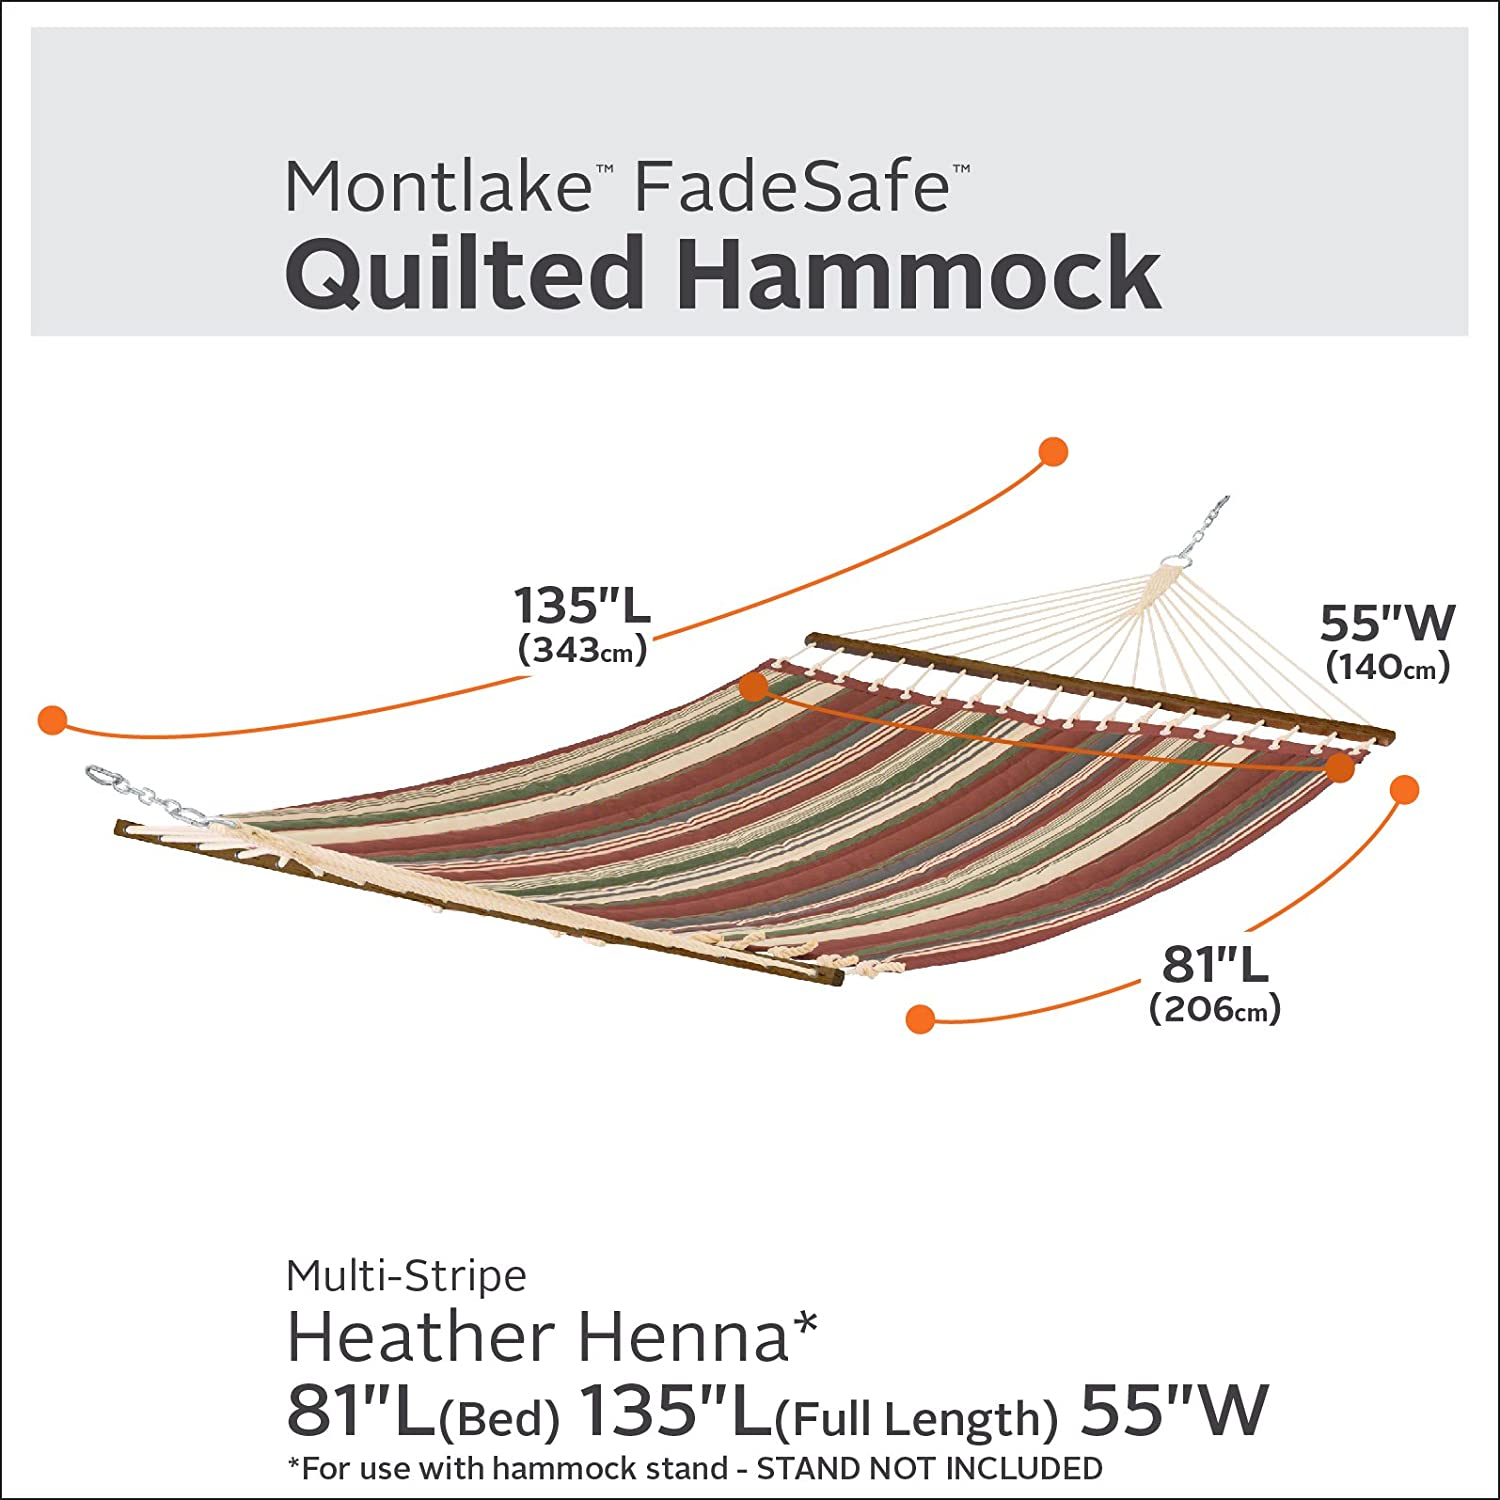 Classic Accessories Montlake FadeSafe Quilted Double Hammock, Heather Henna Multi-Stripe